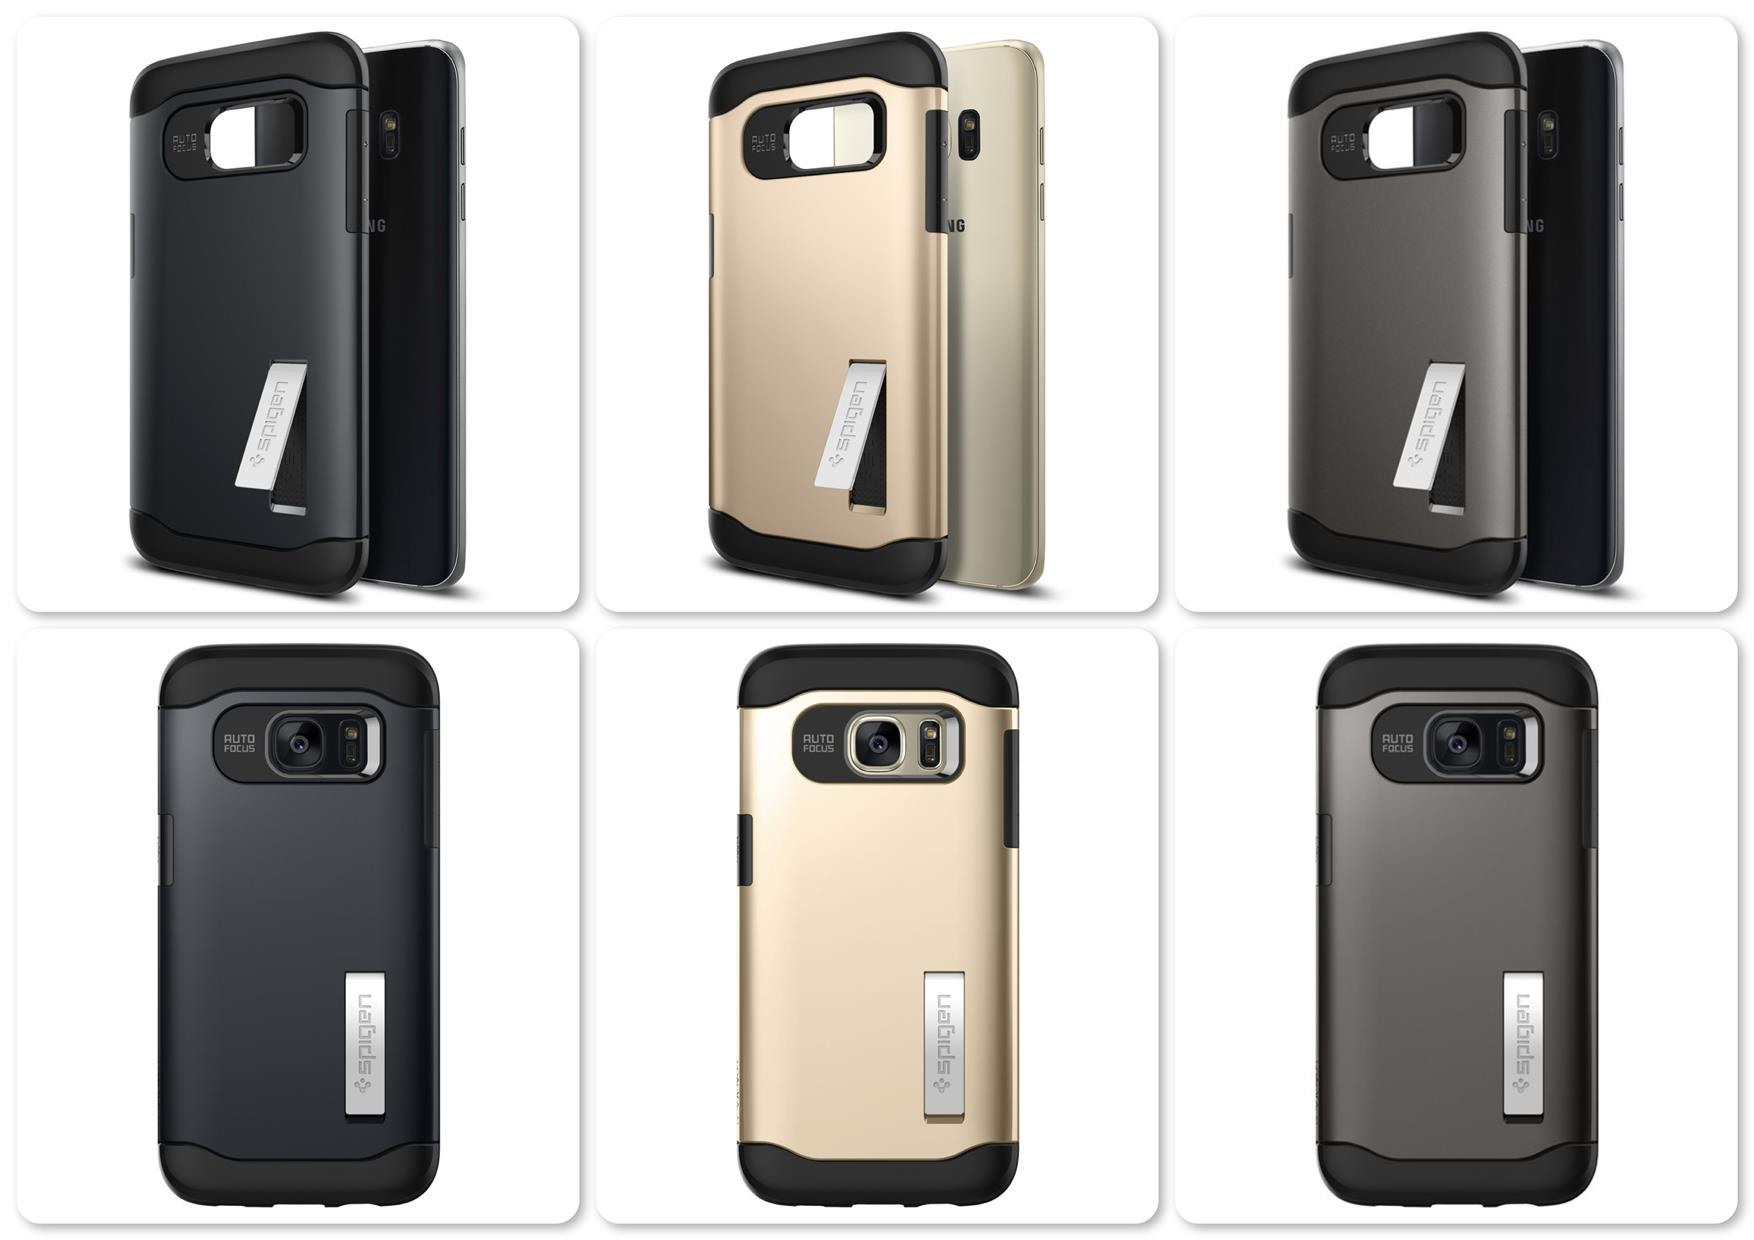 Samsung Galaxy S7 Edge Spigen Slim Armor series Case with Stand